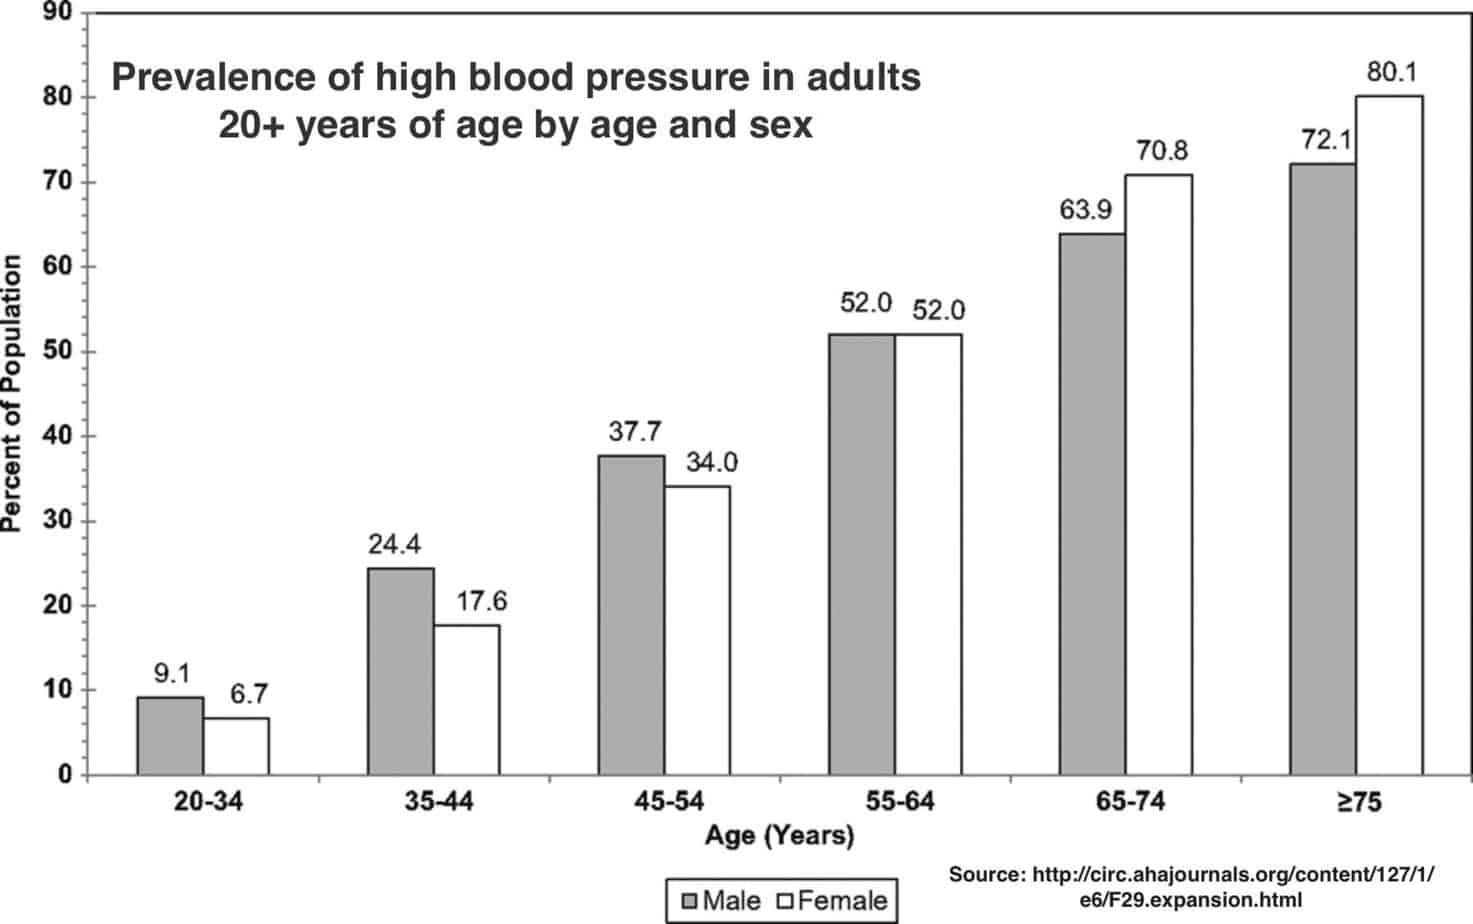 Prevalence You Prevalence Of High Blood Pressure In Adults 20 Years Of Age By